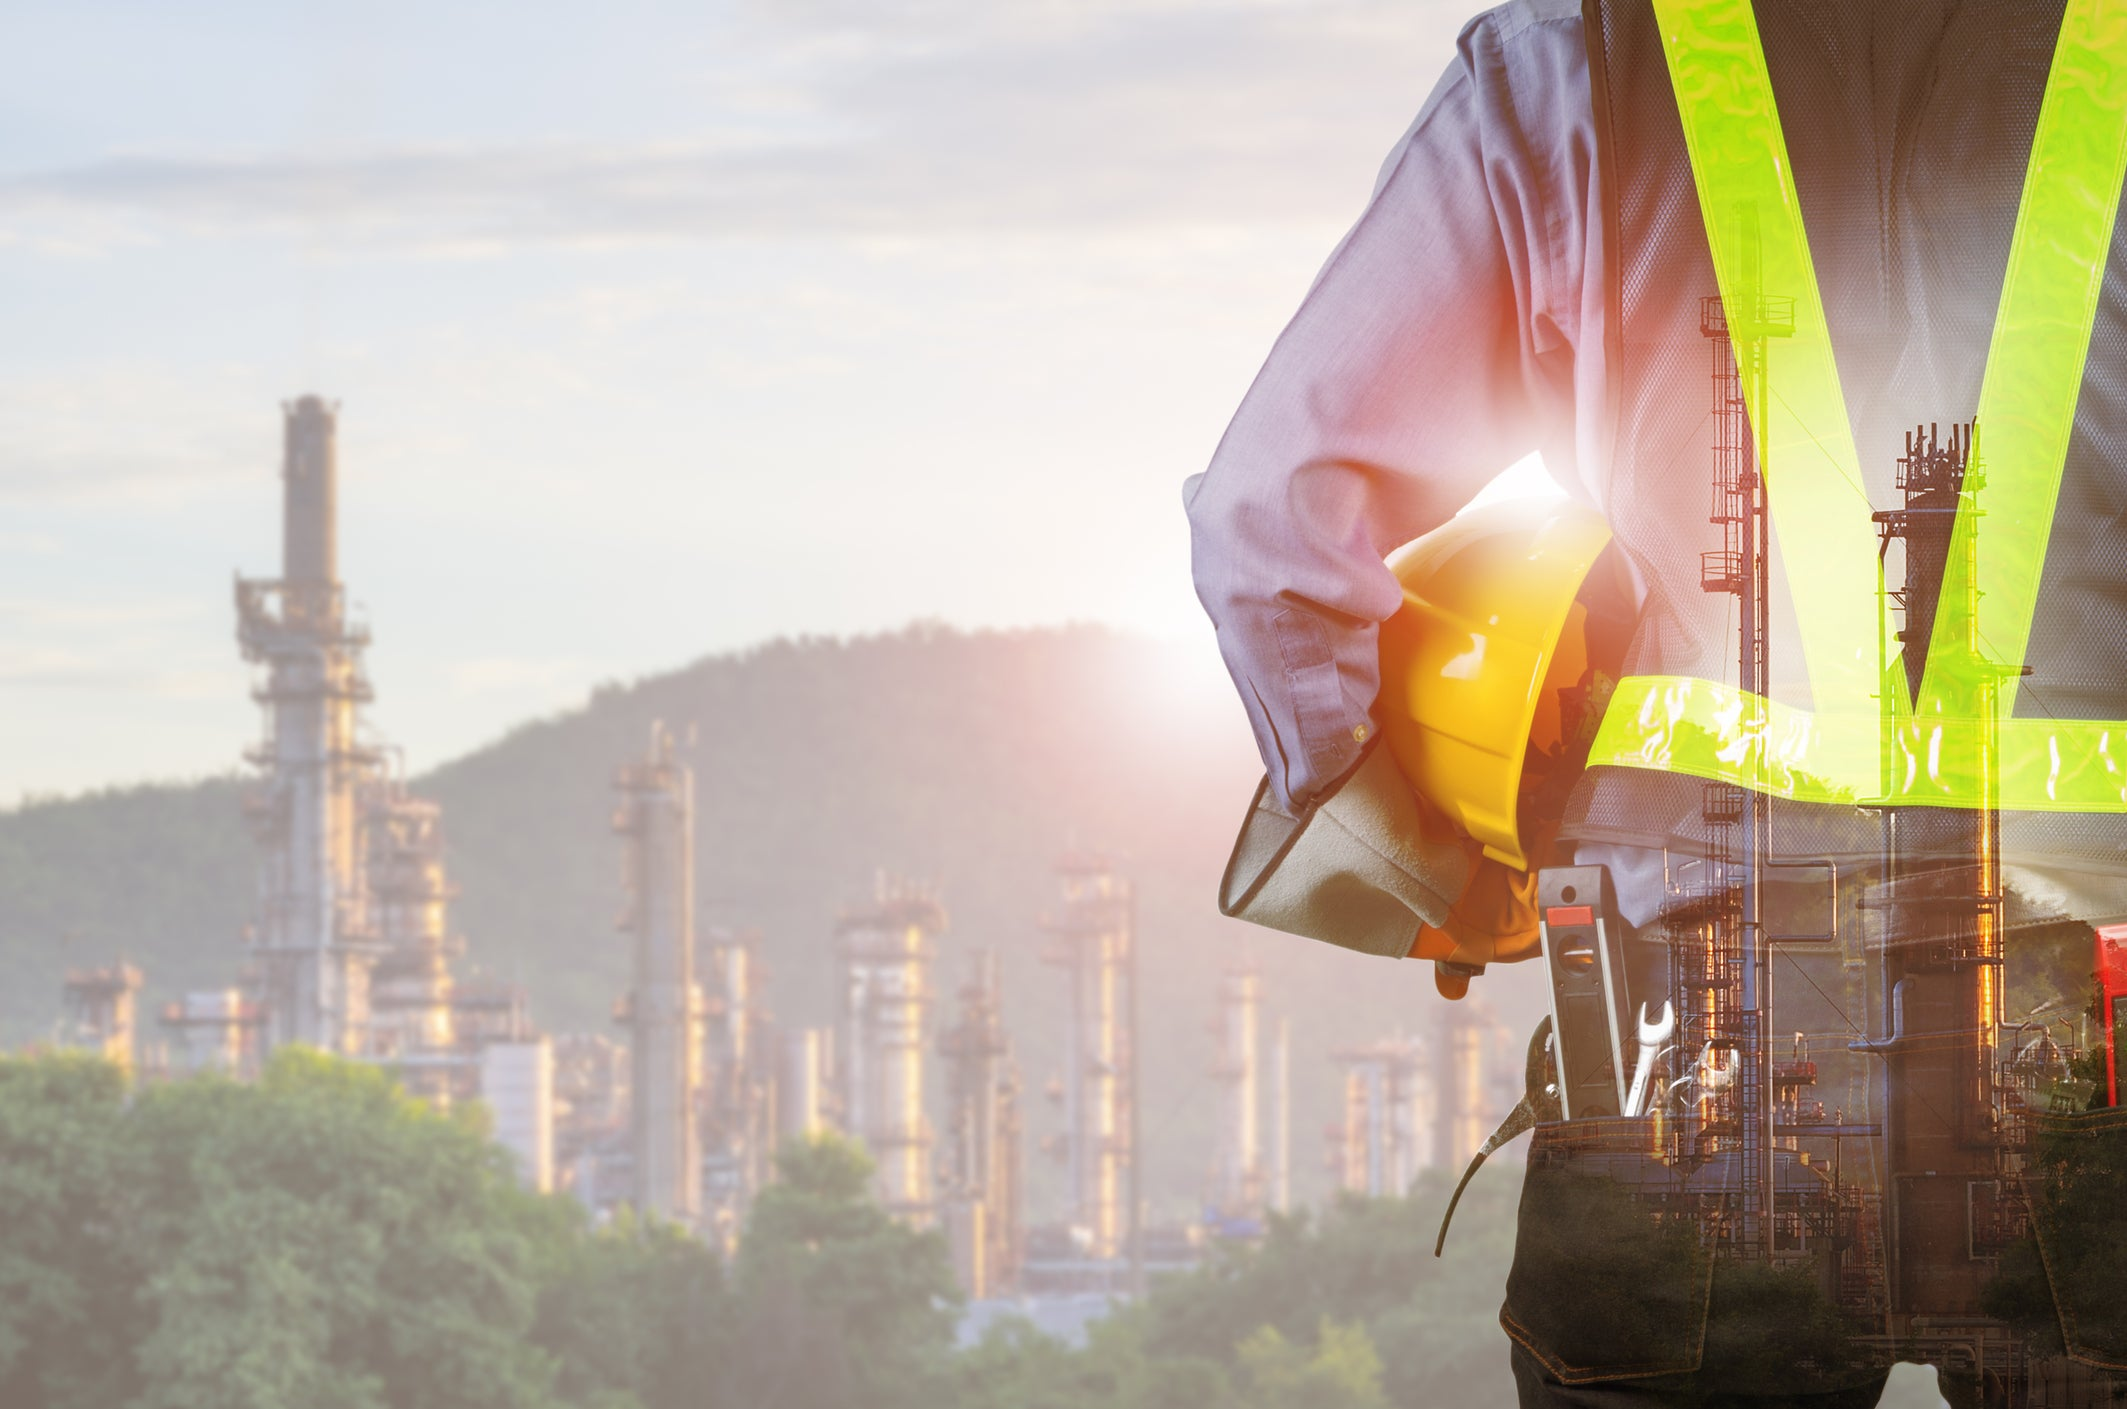 3 Top Energy Stocks to Buy Right Now | The Motley Fool